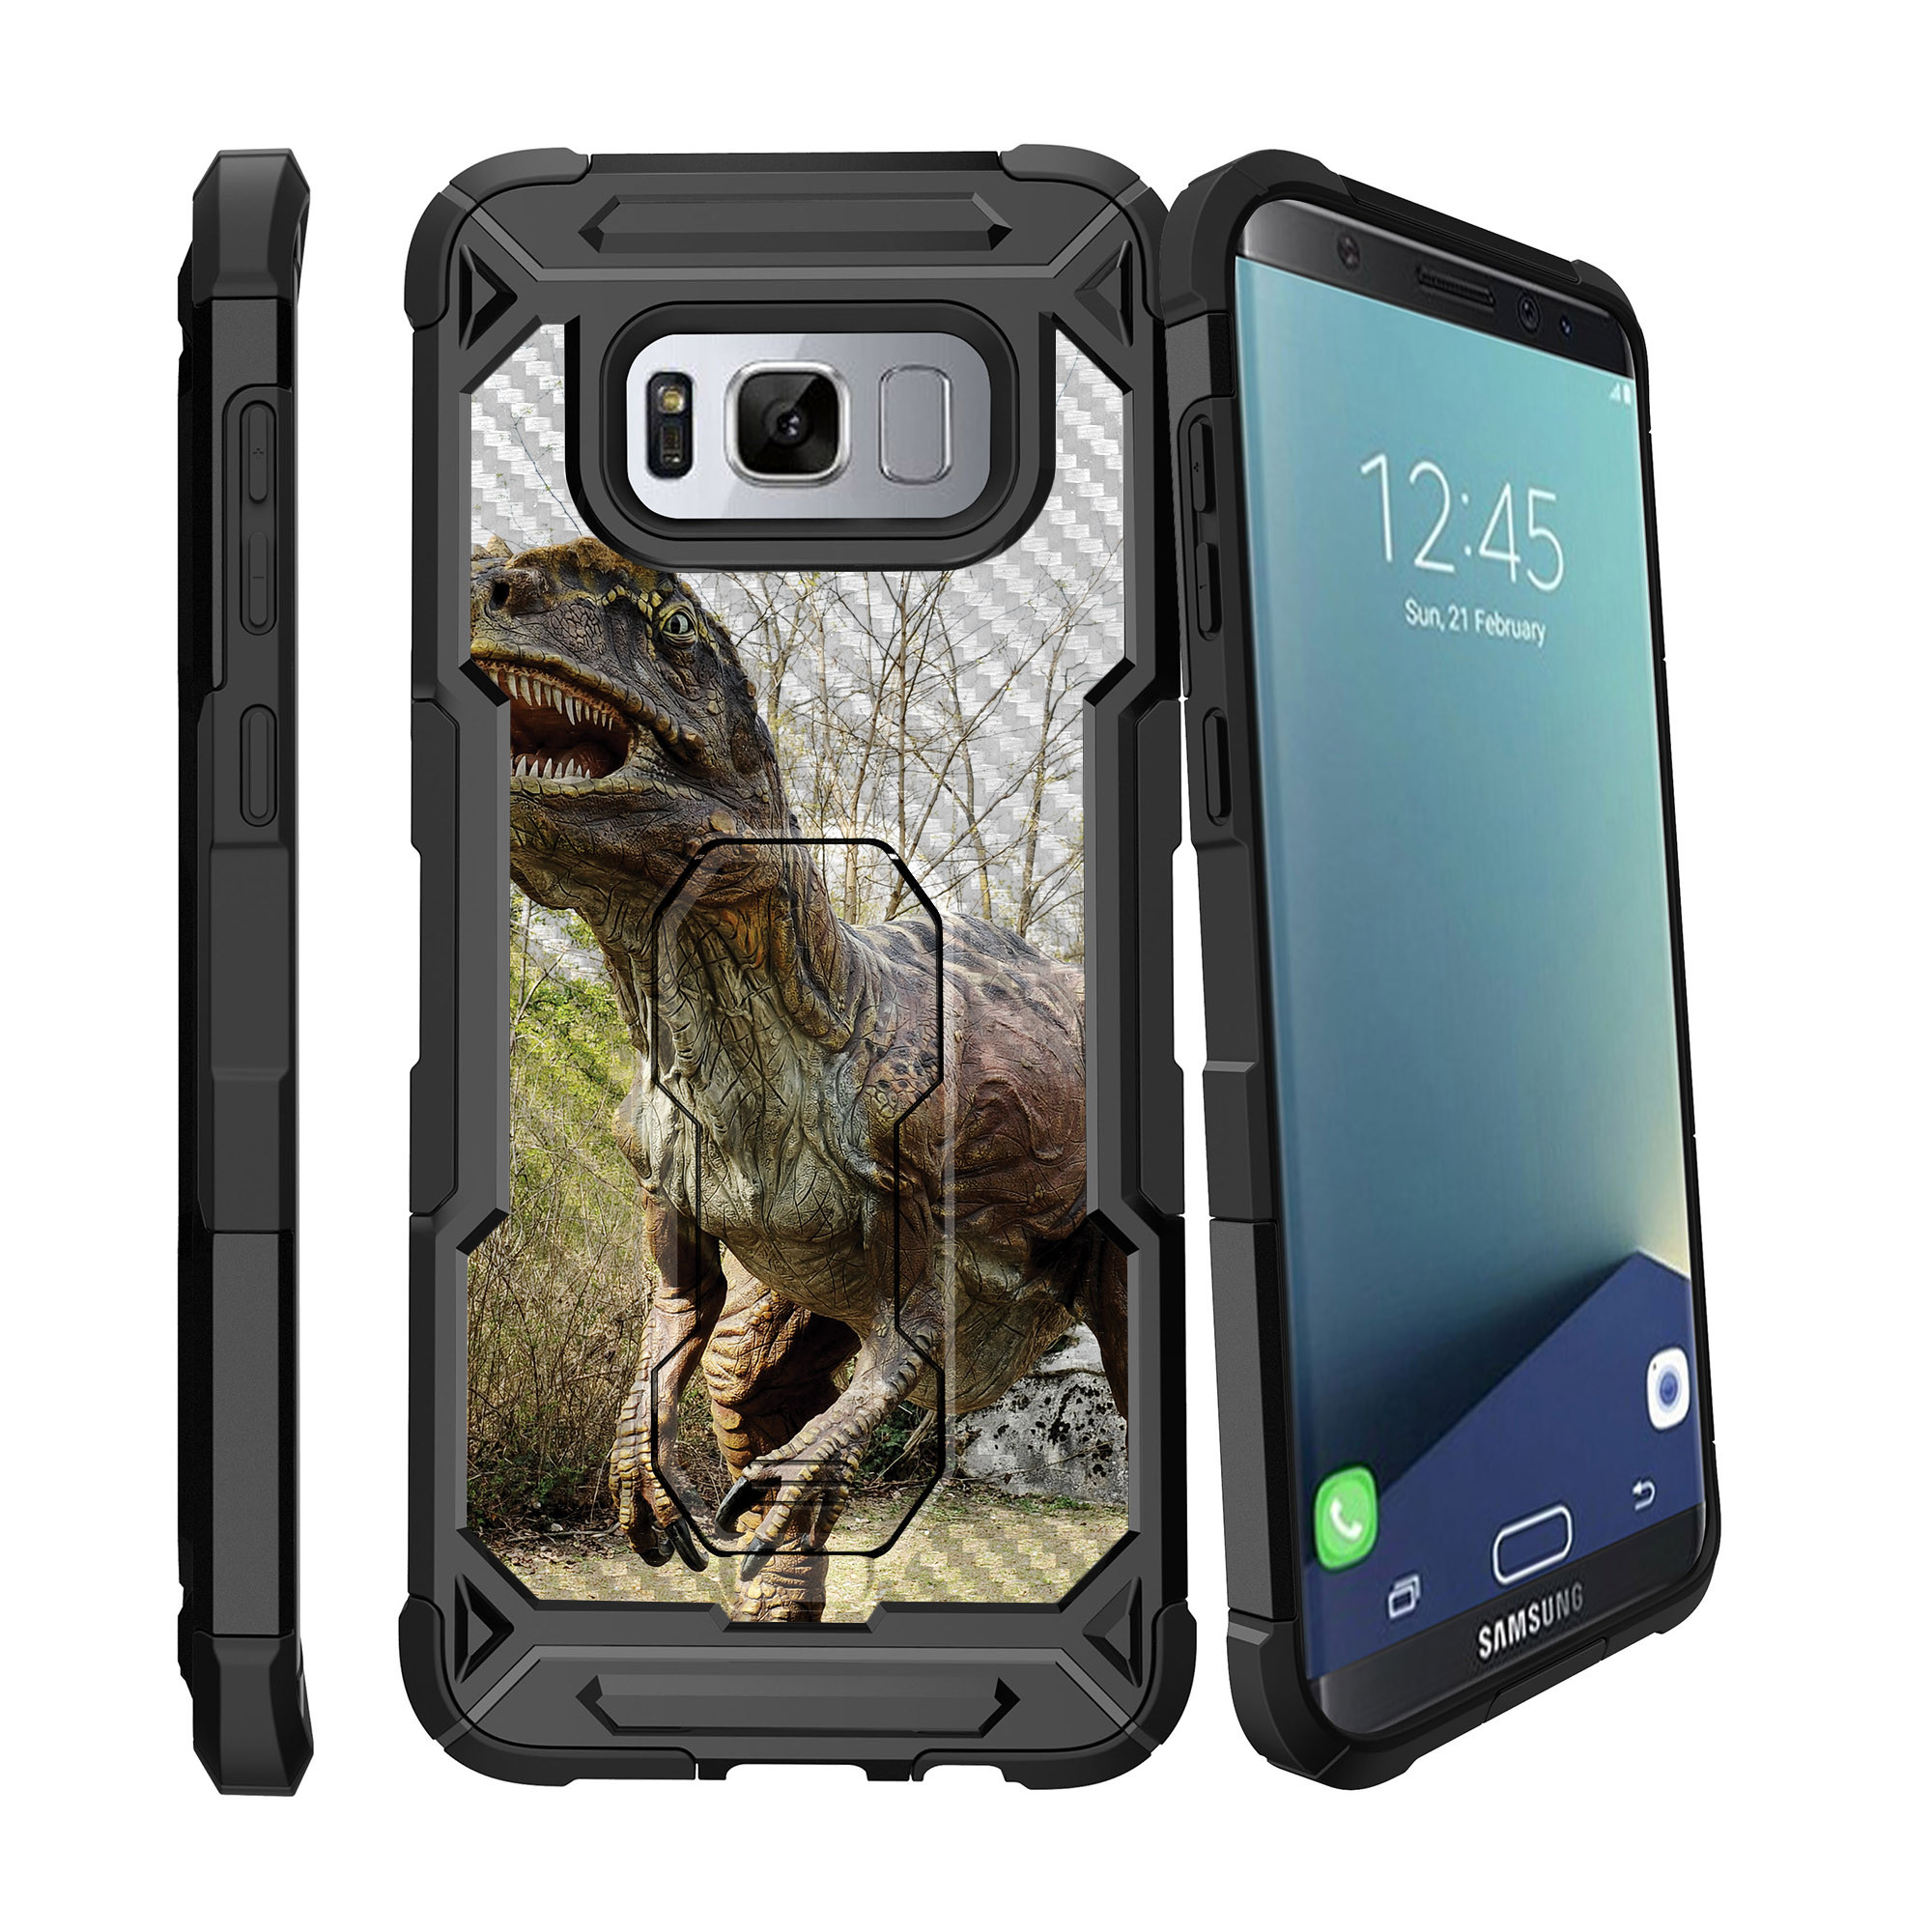 Case for Samsung Galaxy S8 Plus Version [ UFO Defense Case ][Galaxy S8 PLUS SM-G955][Black Silicone] Carbon Fiber Texture Case with Holster + Stand Dino Collection